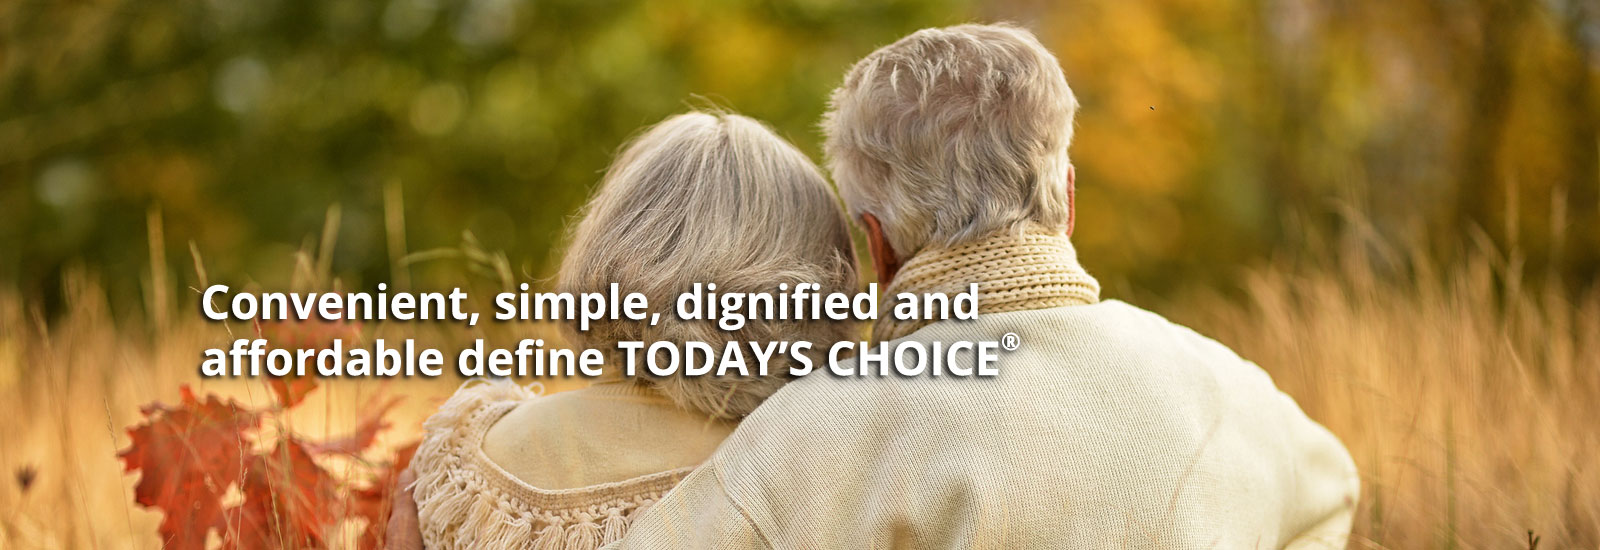 Convenient, simple, dignified and affordable define Today's Choice